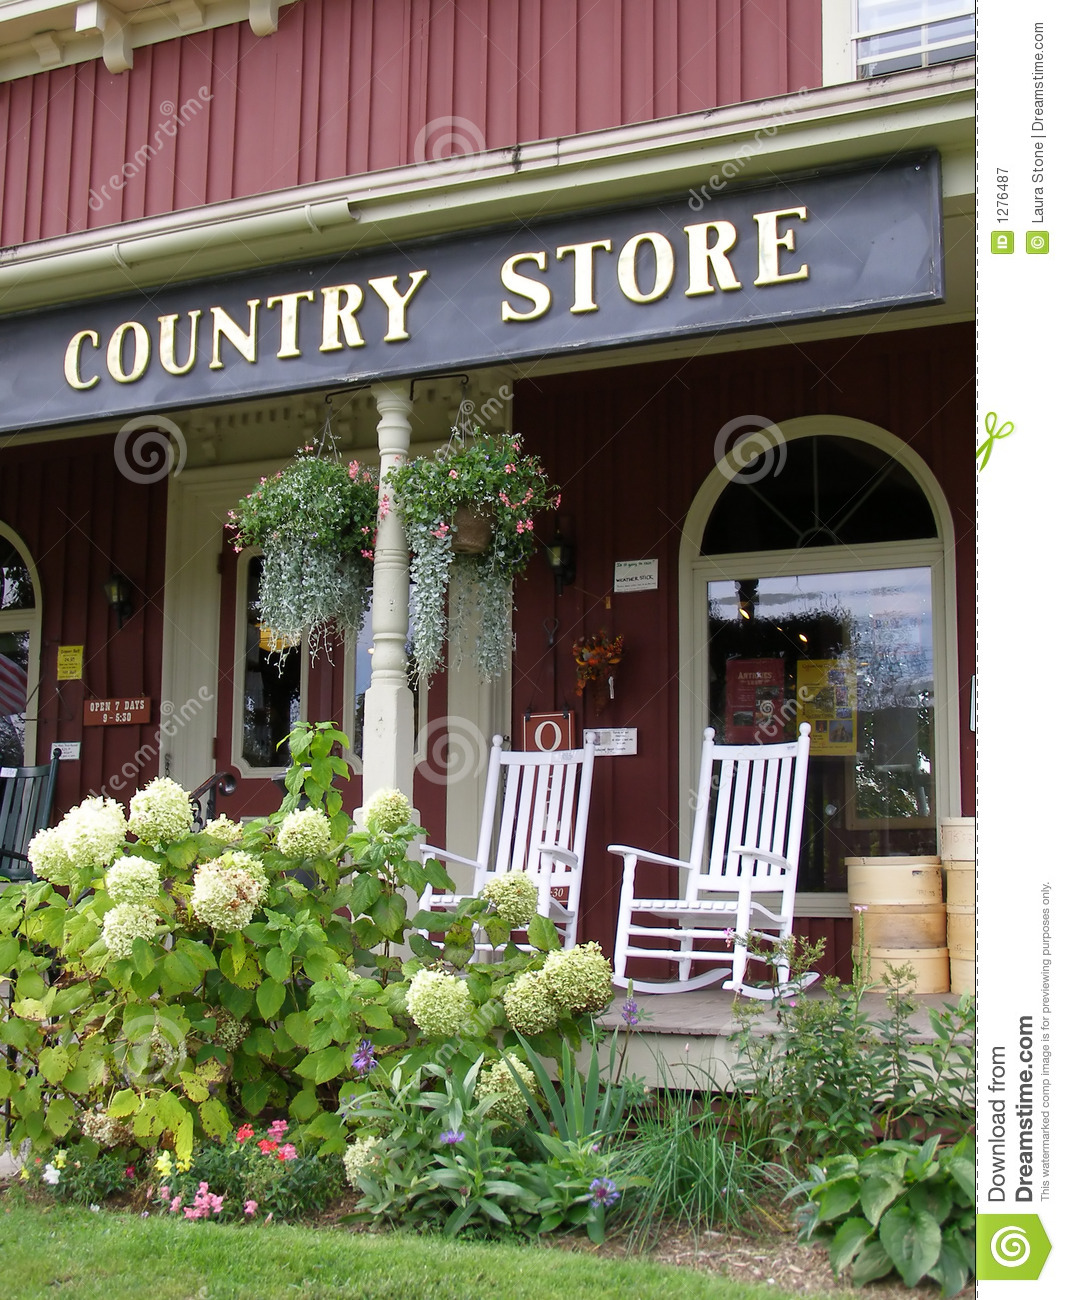 Country Store stock image Image of country entrance